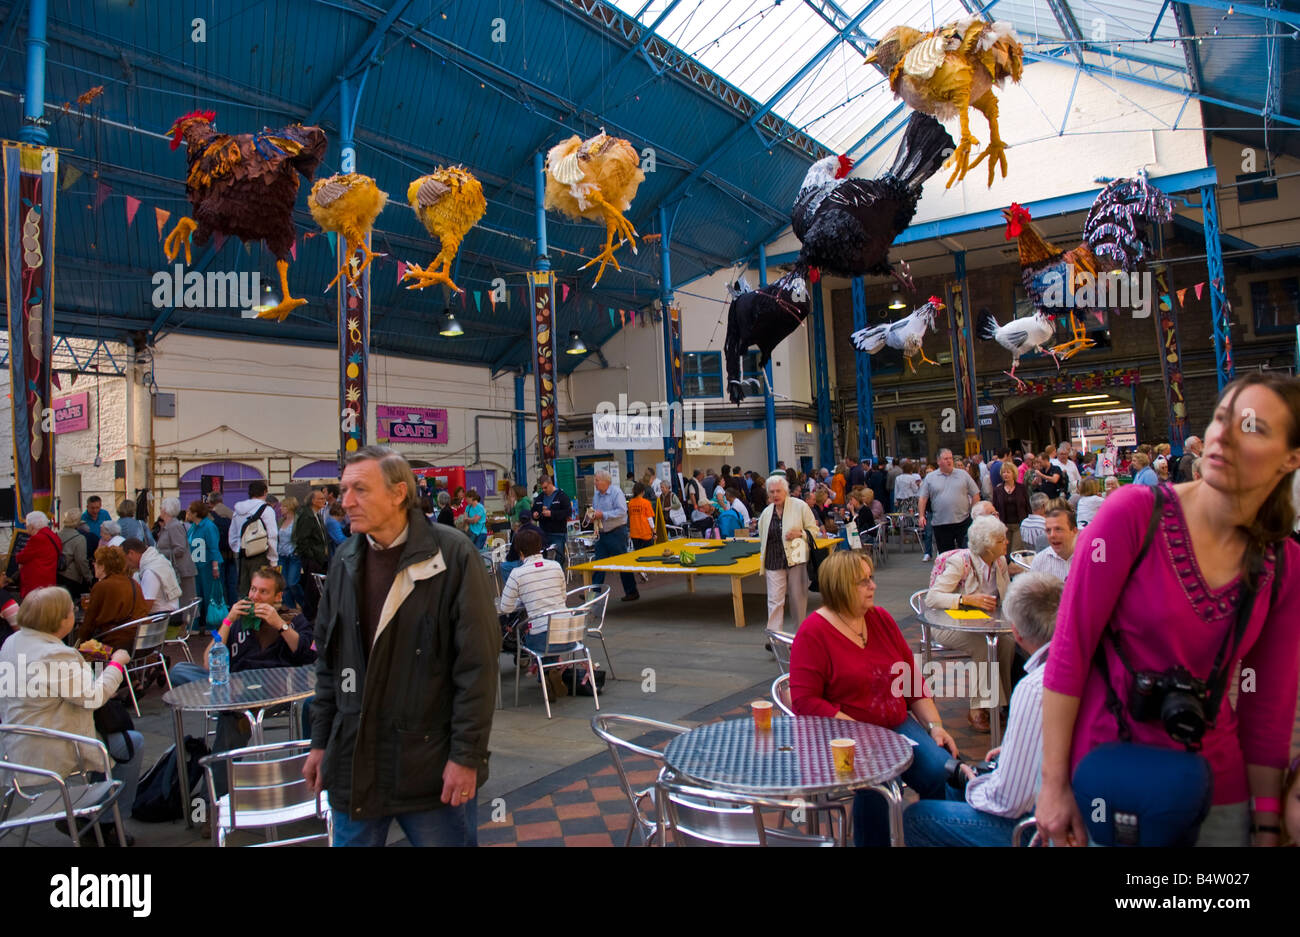 Crowds of people wander sit and browse stalls in Market Hall at Abergavenny Food Festival - Stock Image